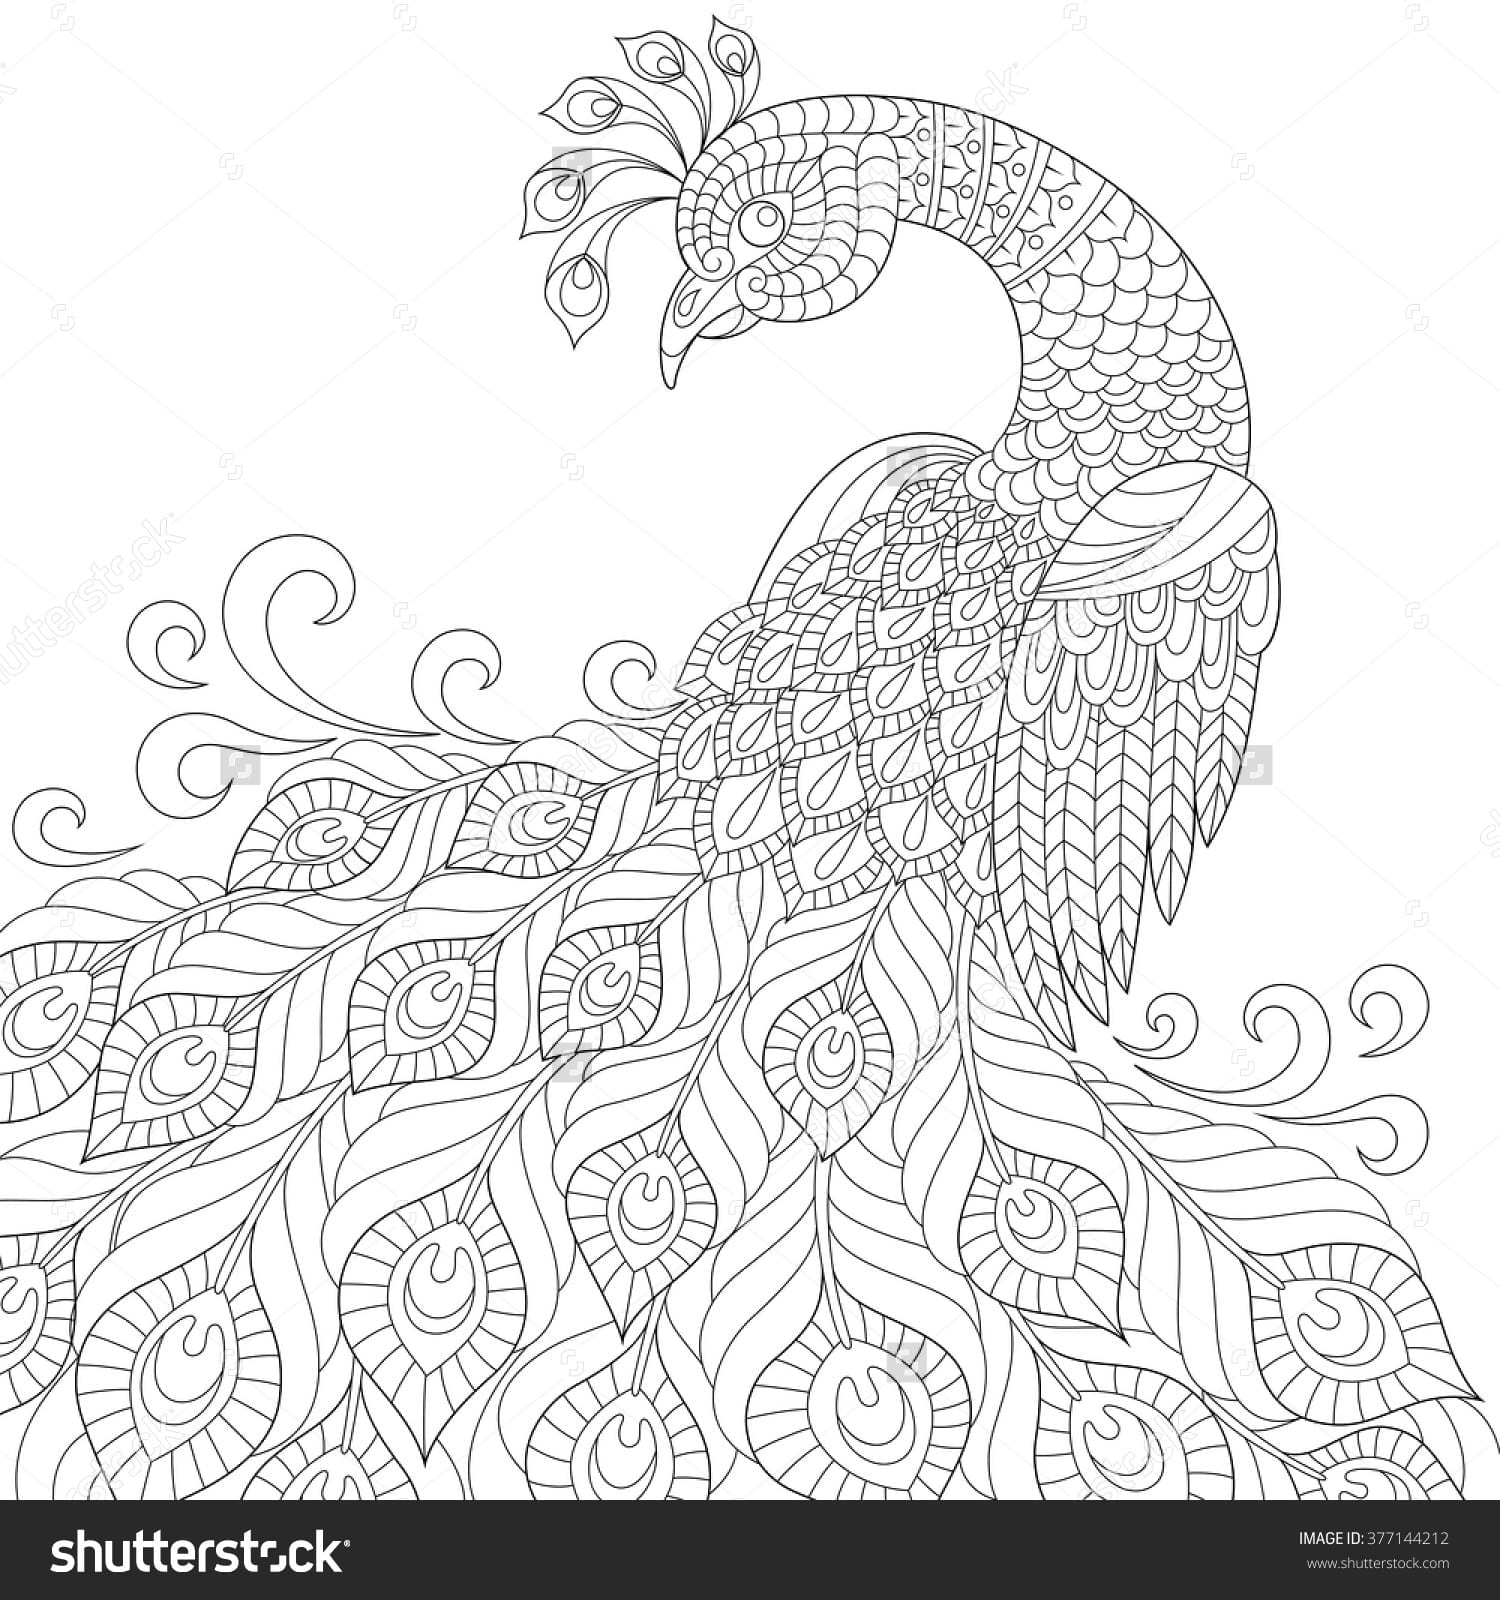 Peacock Coloring Pages For Adults Printable Best Of